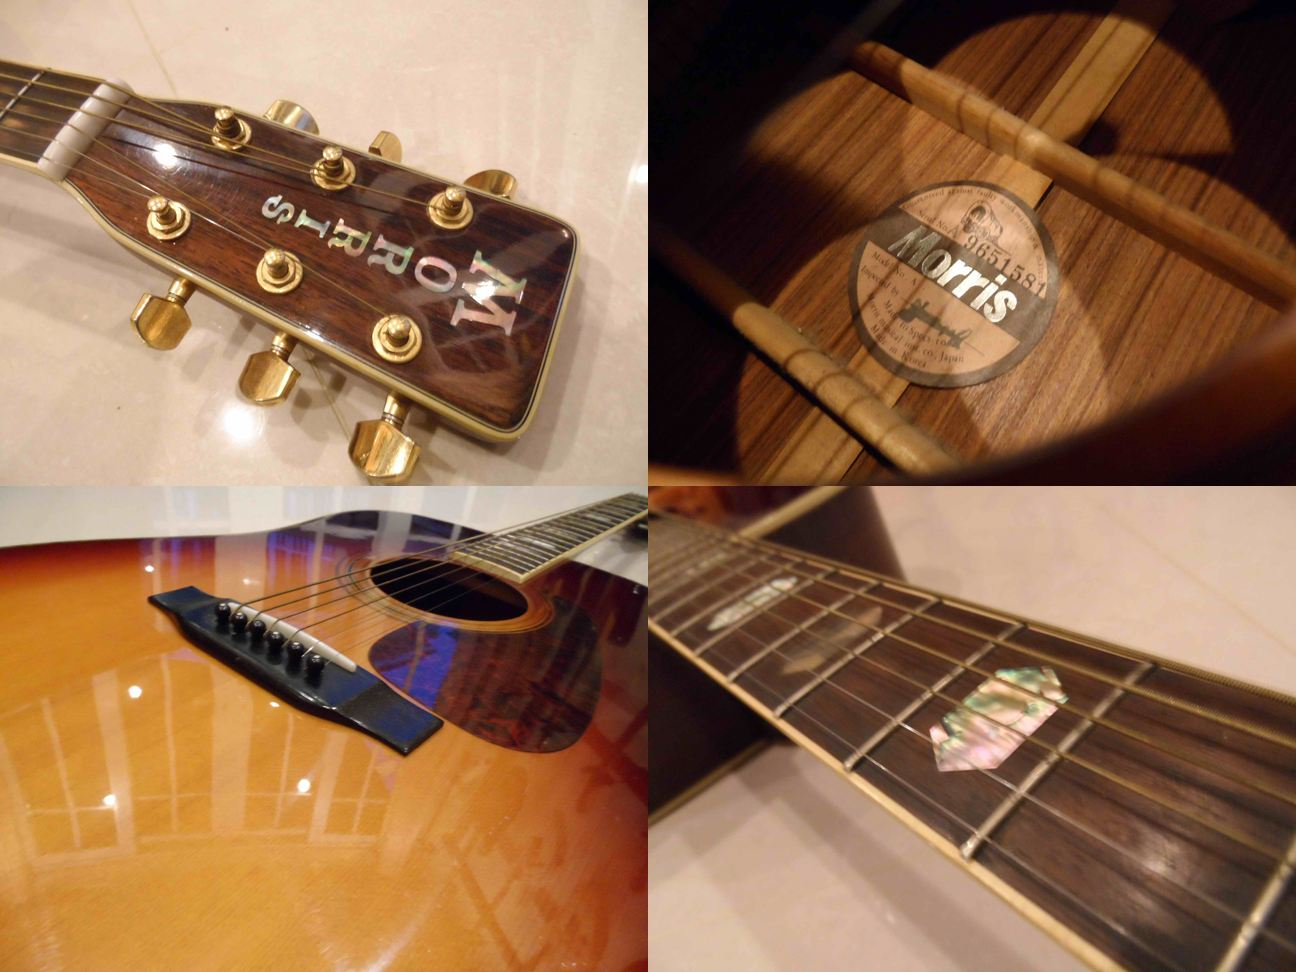 http://www.guitarcafethailand.com/images/product/ext/0_140112202027